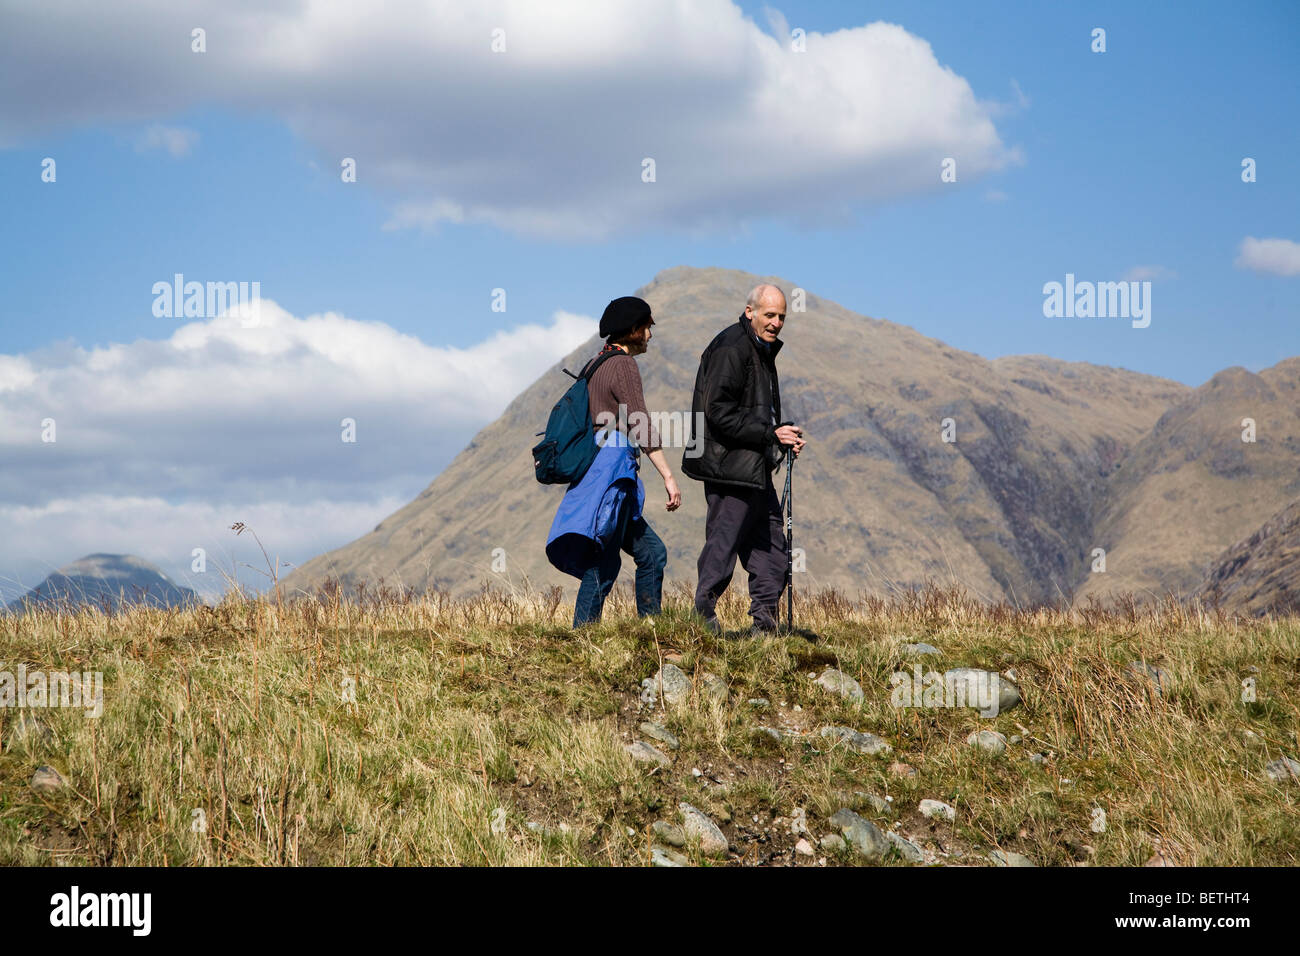 Gentle walk - Stock Image